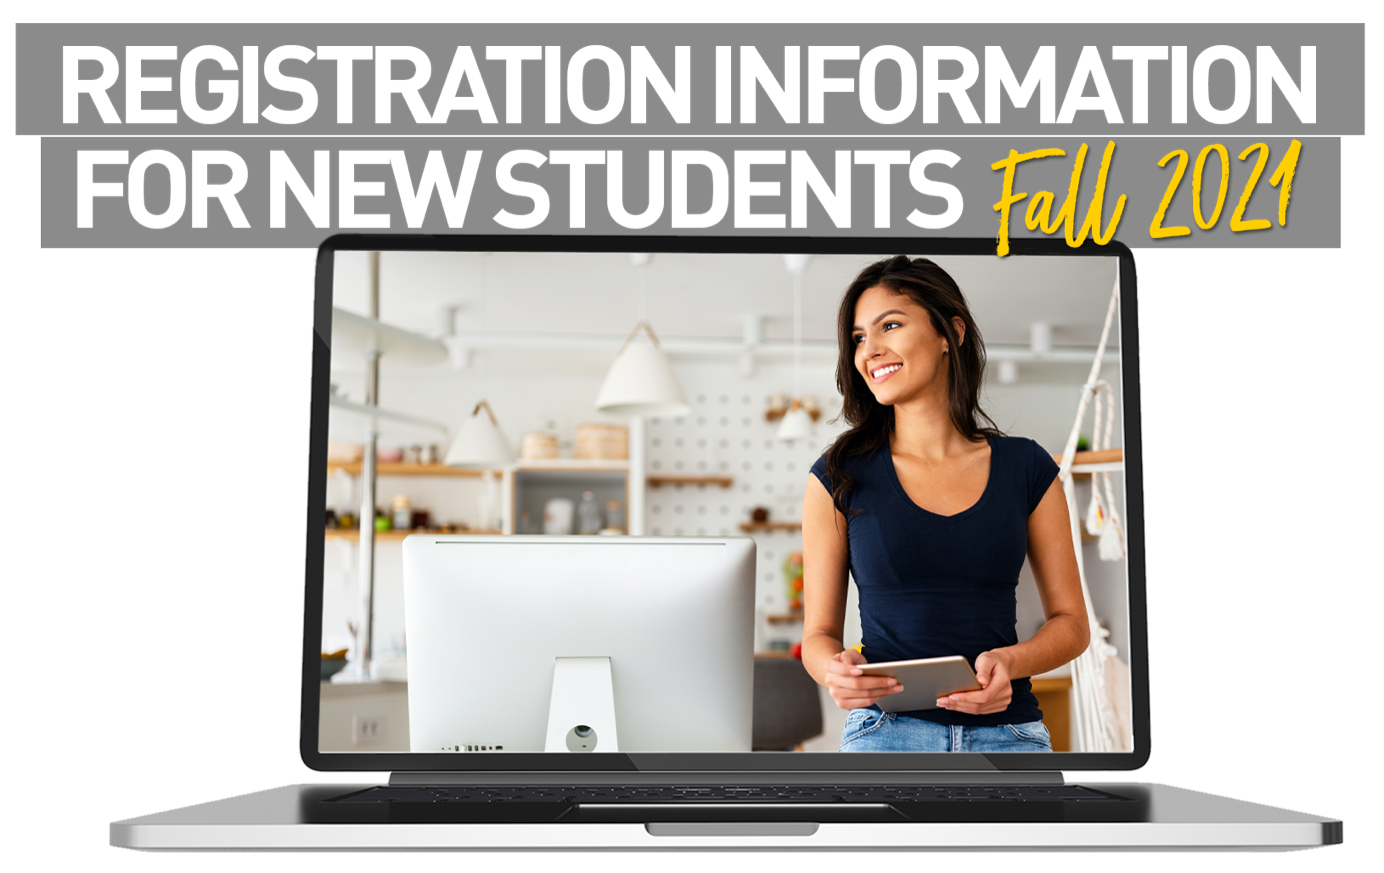 Registration Information For New Students - Fall 2021